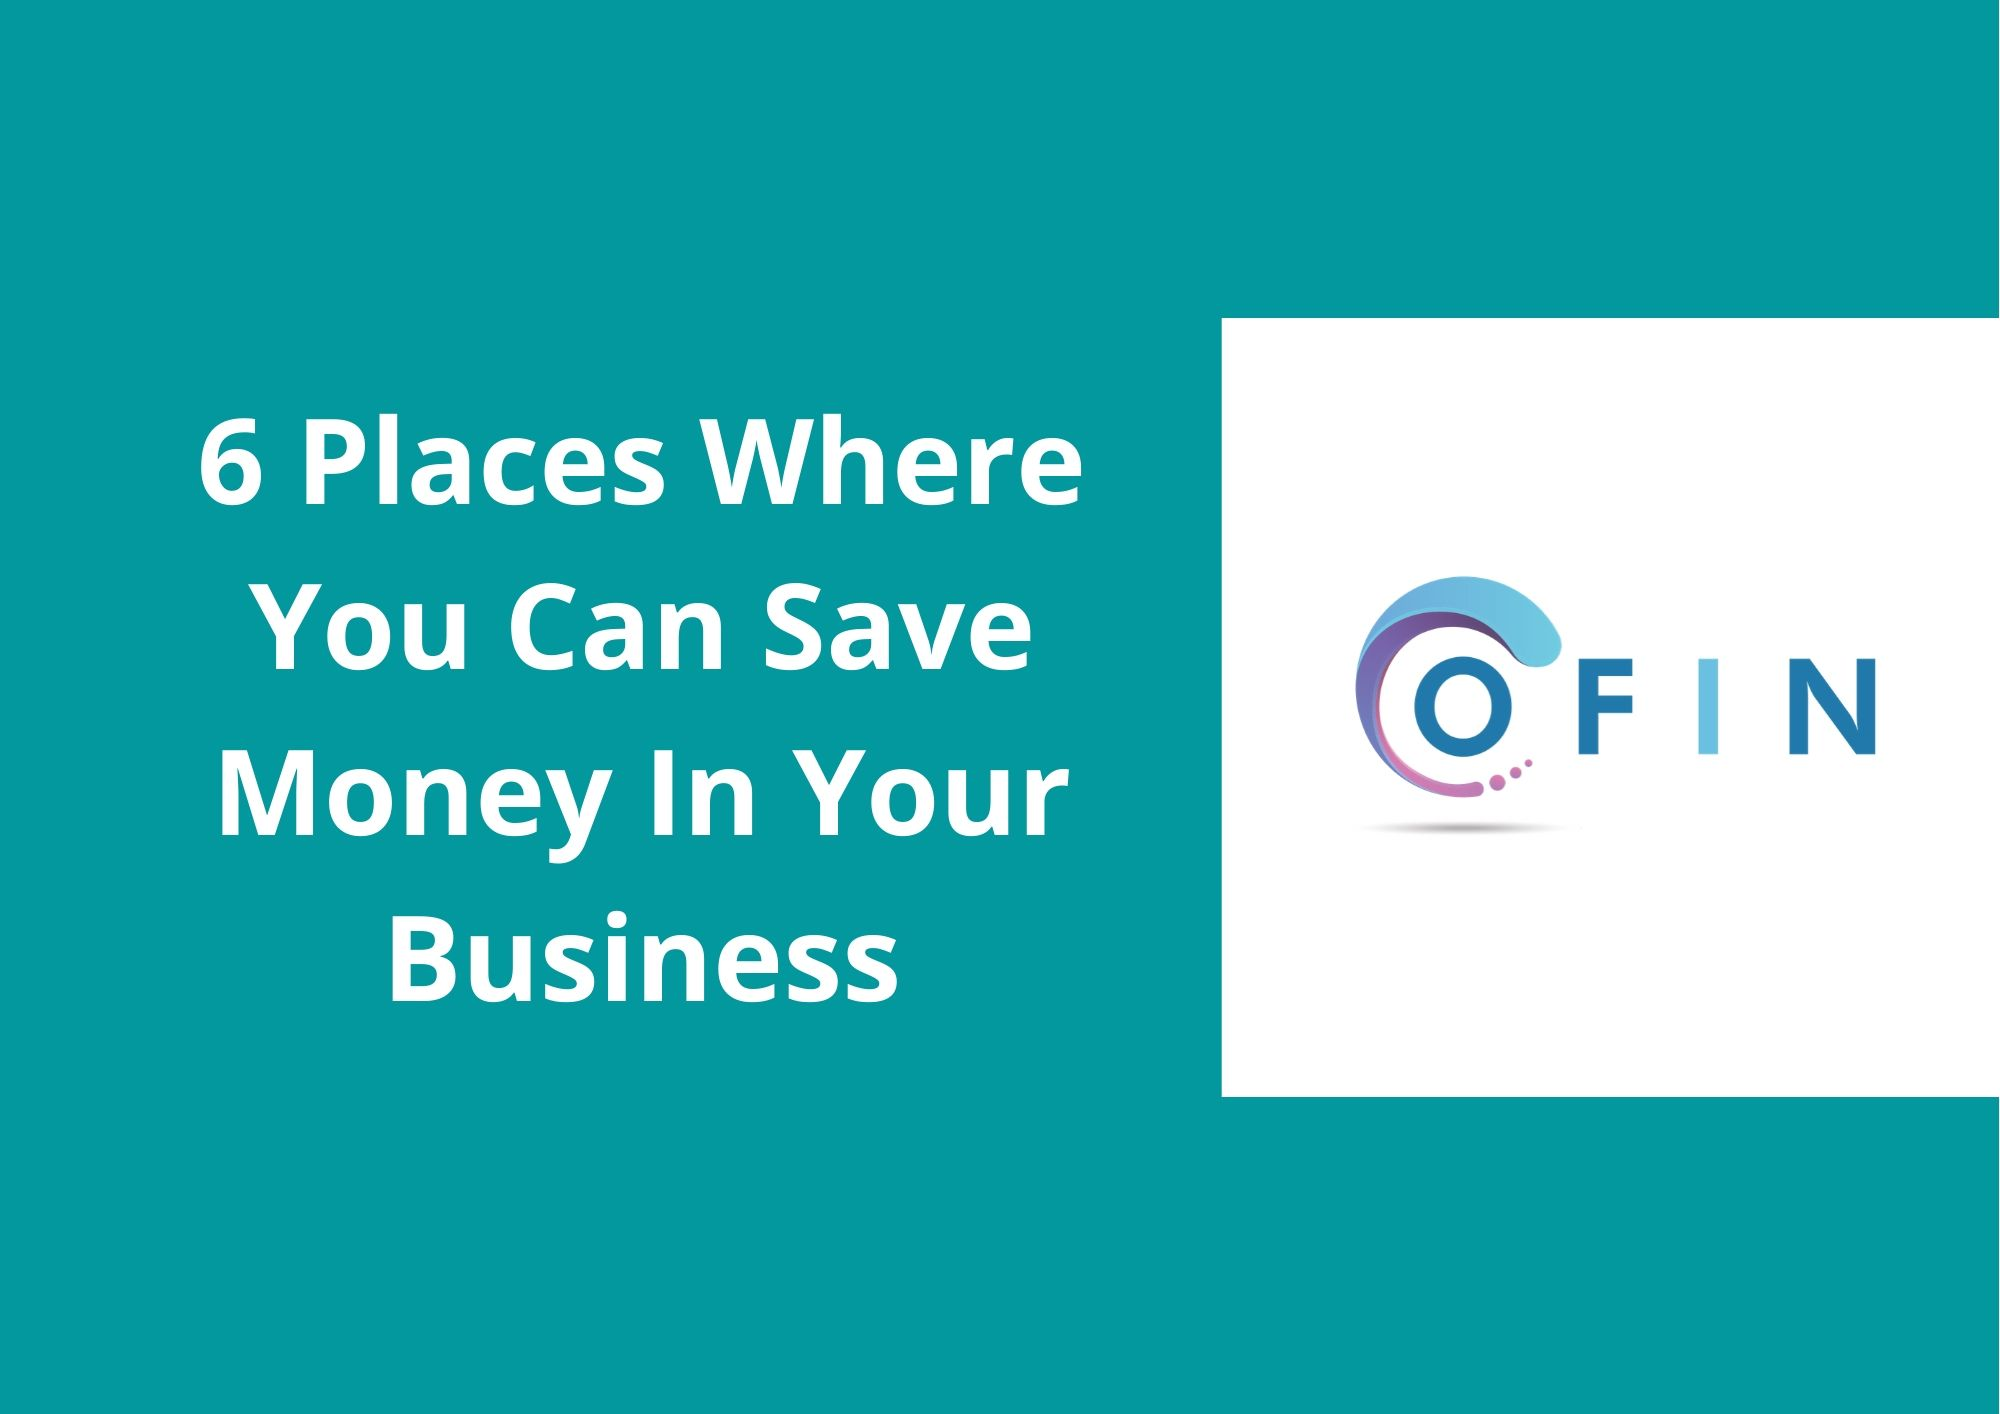 6 places where you can save money in your business